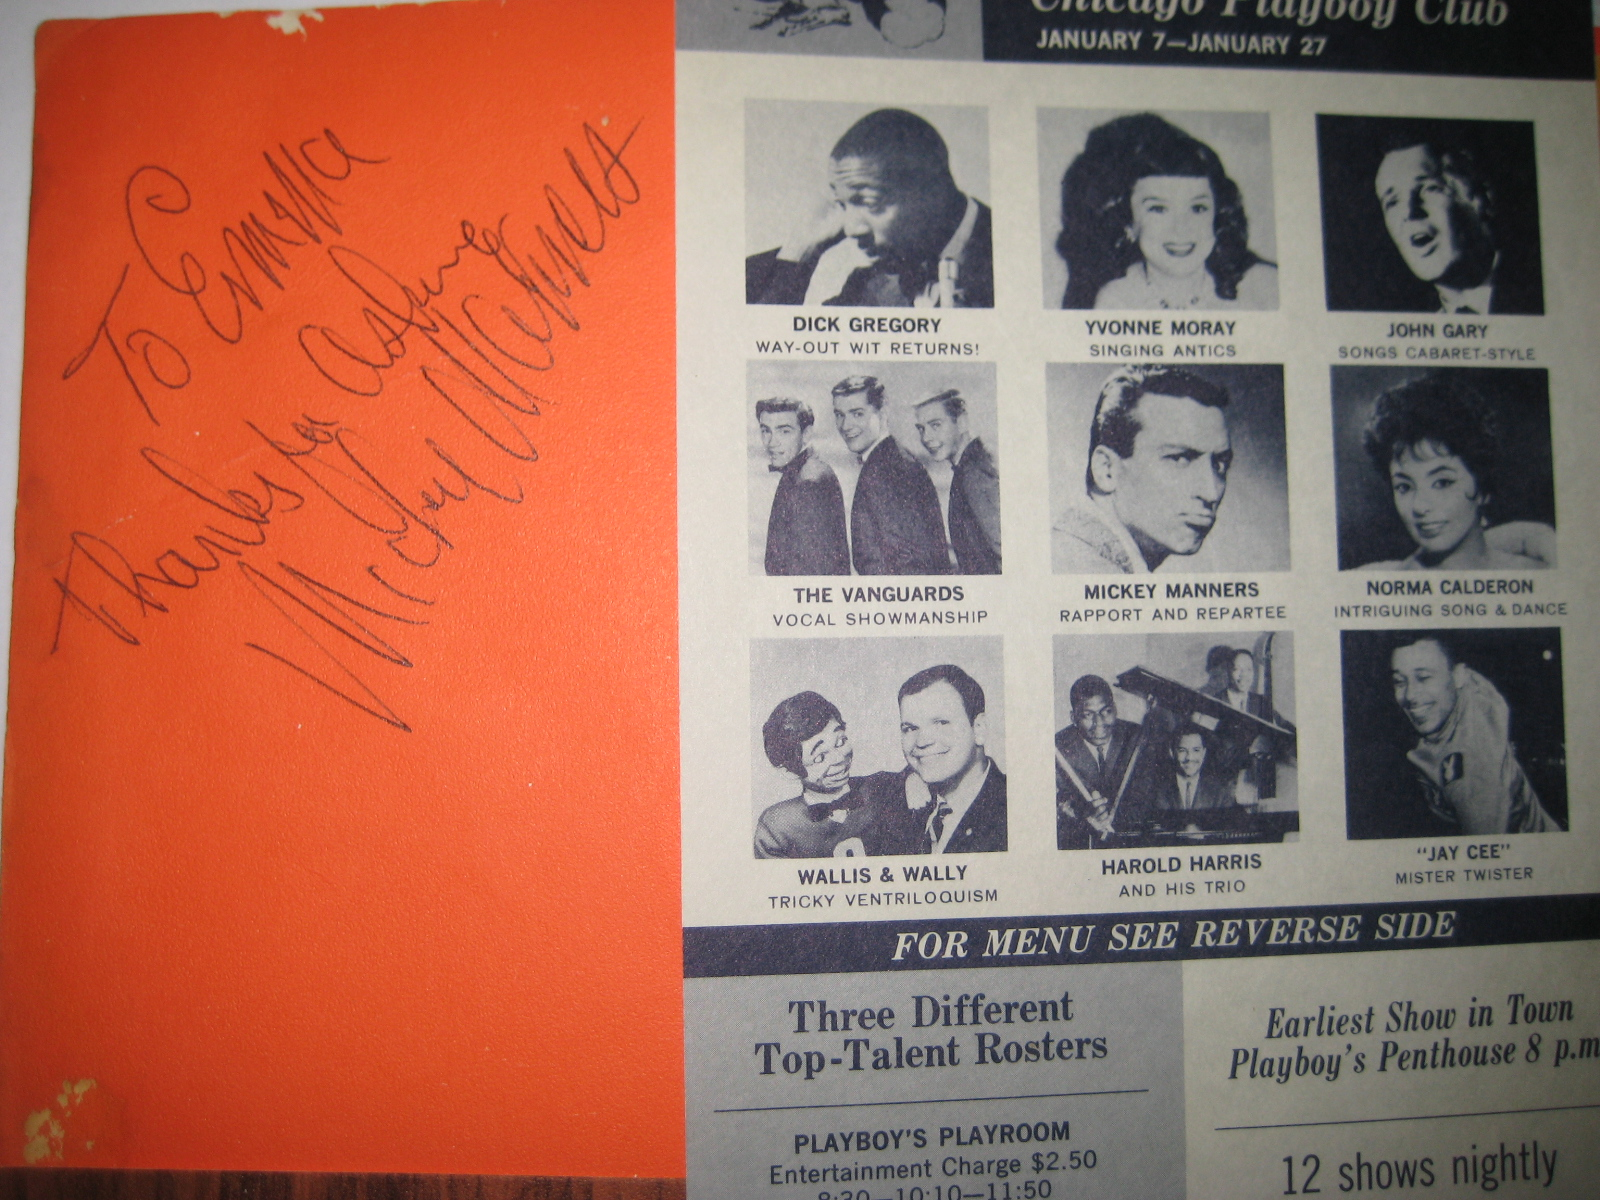 Mickey Manners Playboy Club Autograph